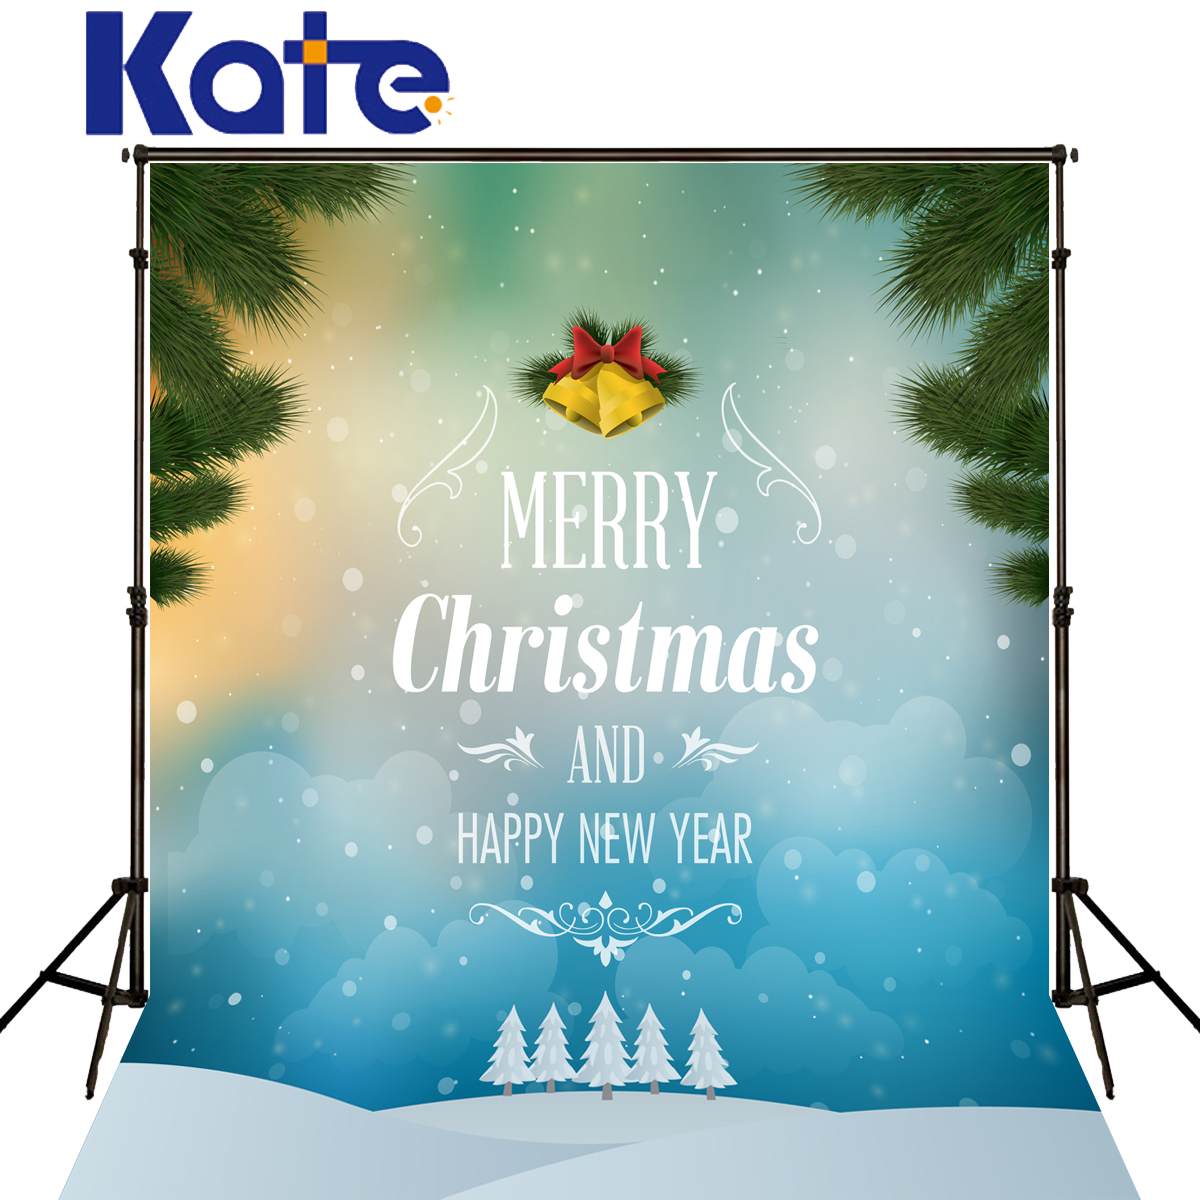 Kate Christmas Background Spot Snow Bell Fundo Fotografico Madeira Green Leaf Background For Photo Studio fp75r12kt4 fp75r12kt4 b15 fp100r12kt4 fp75r12kt3 spot quality